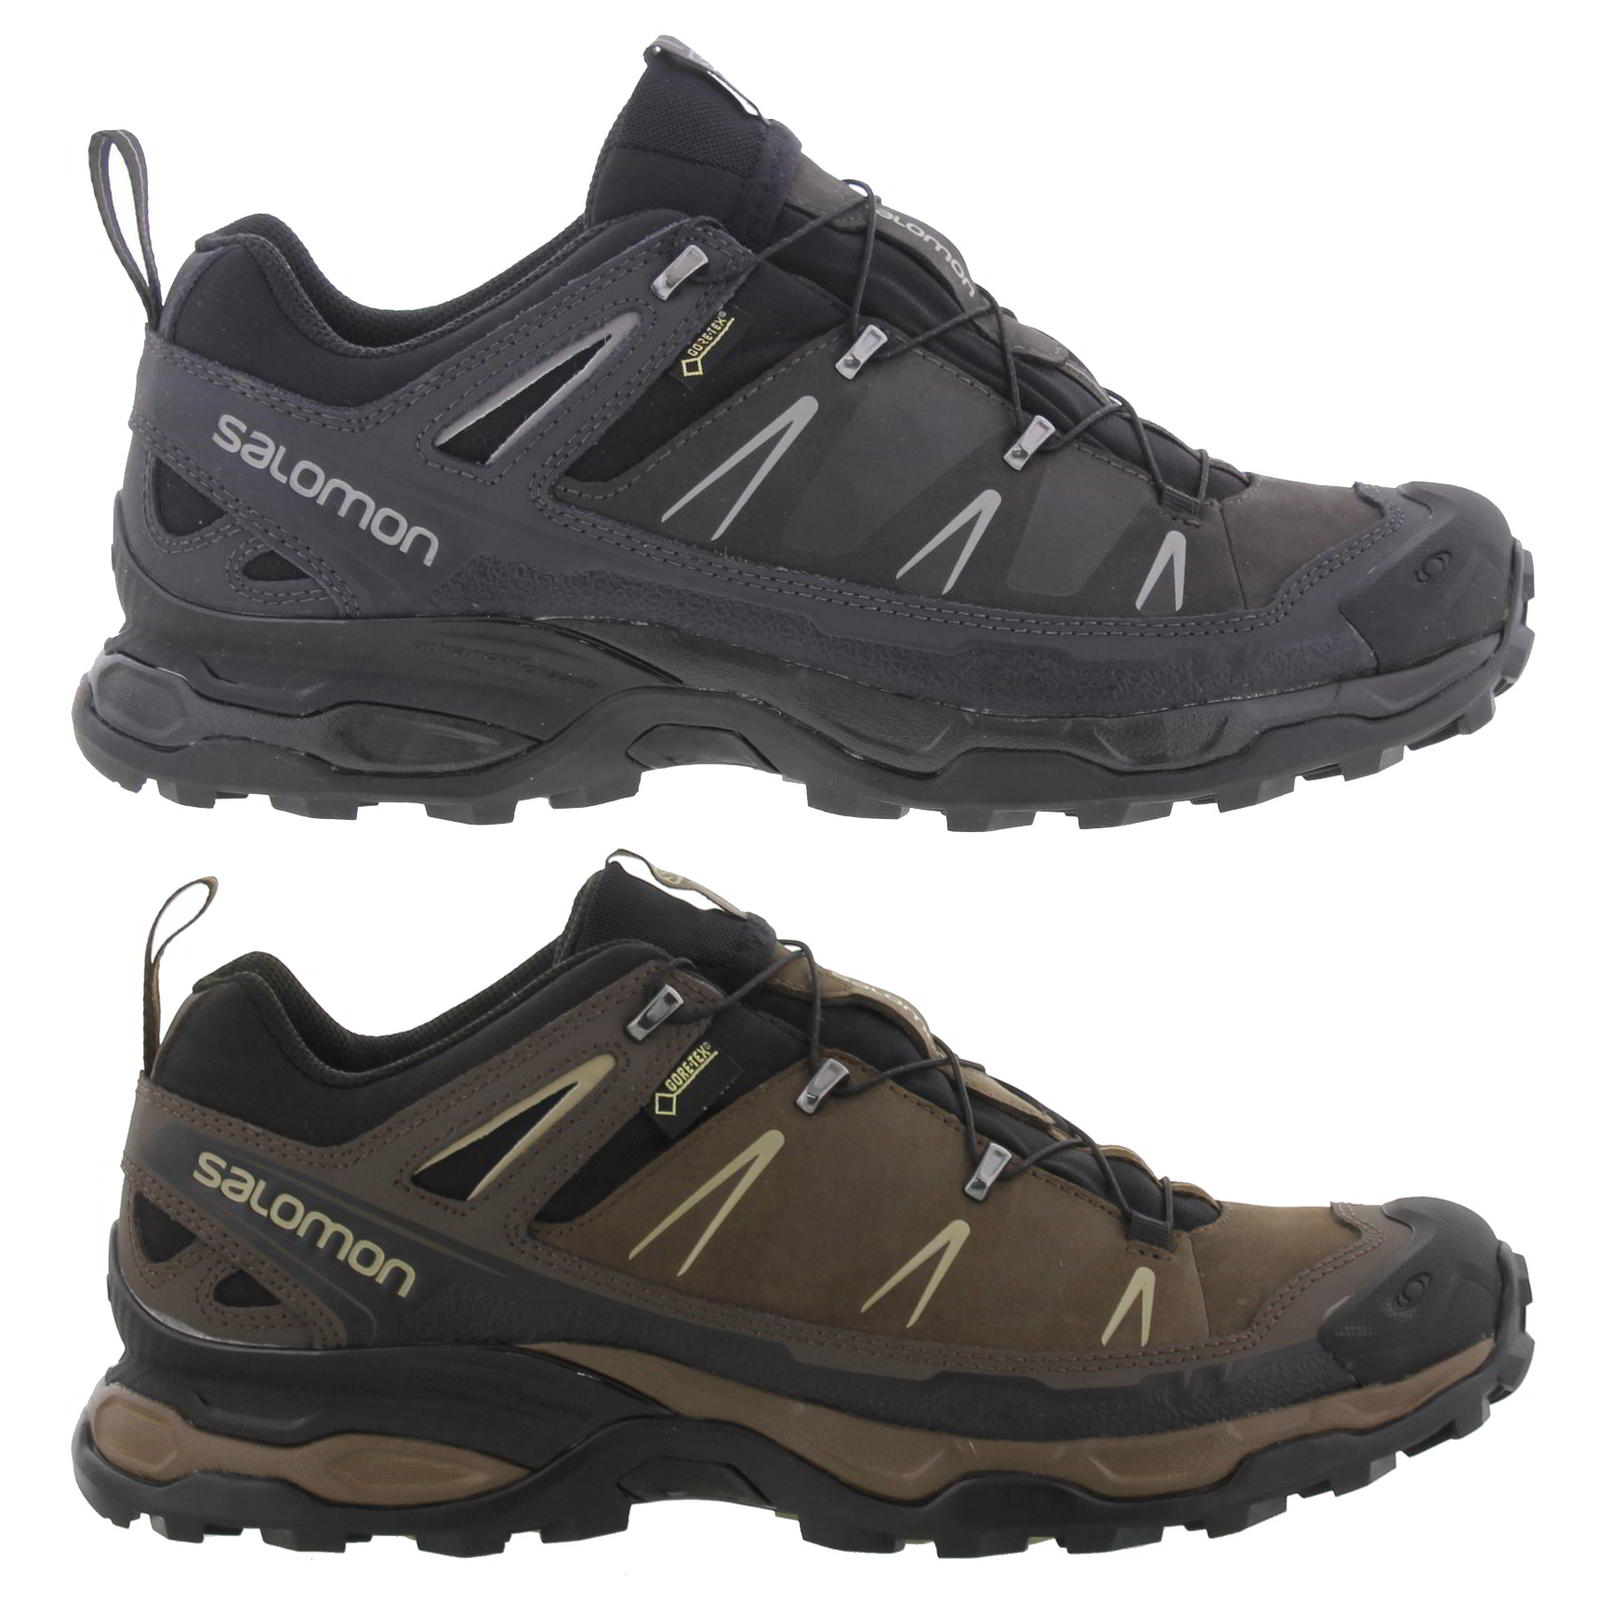 Salomon Women Shoes Gorotex